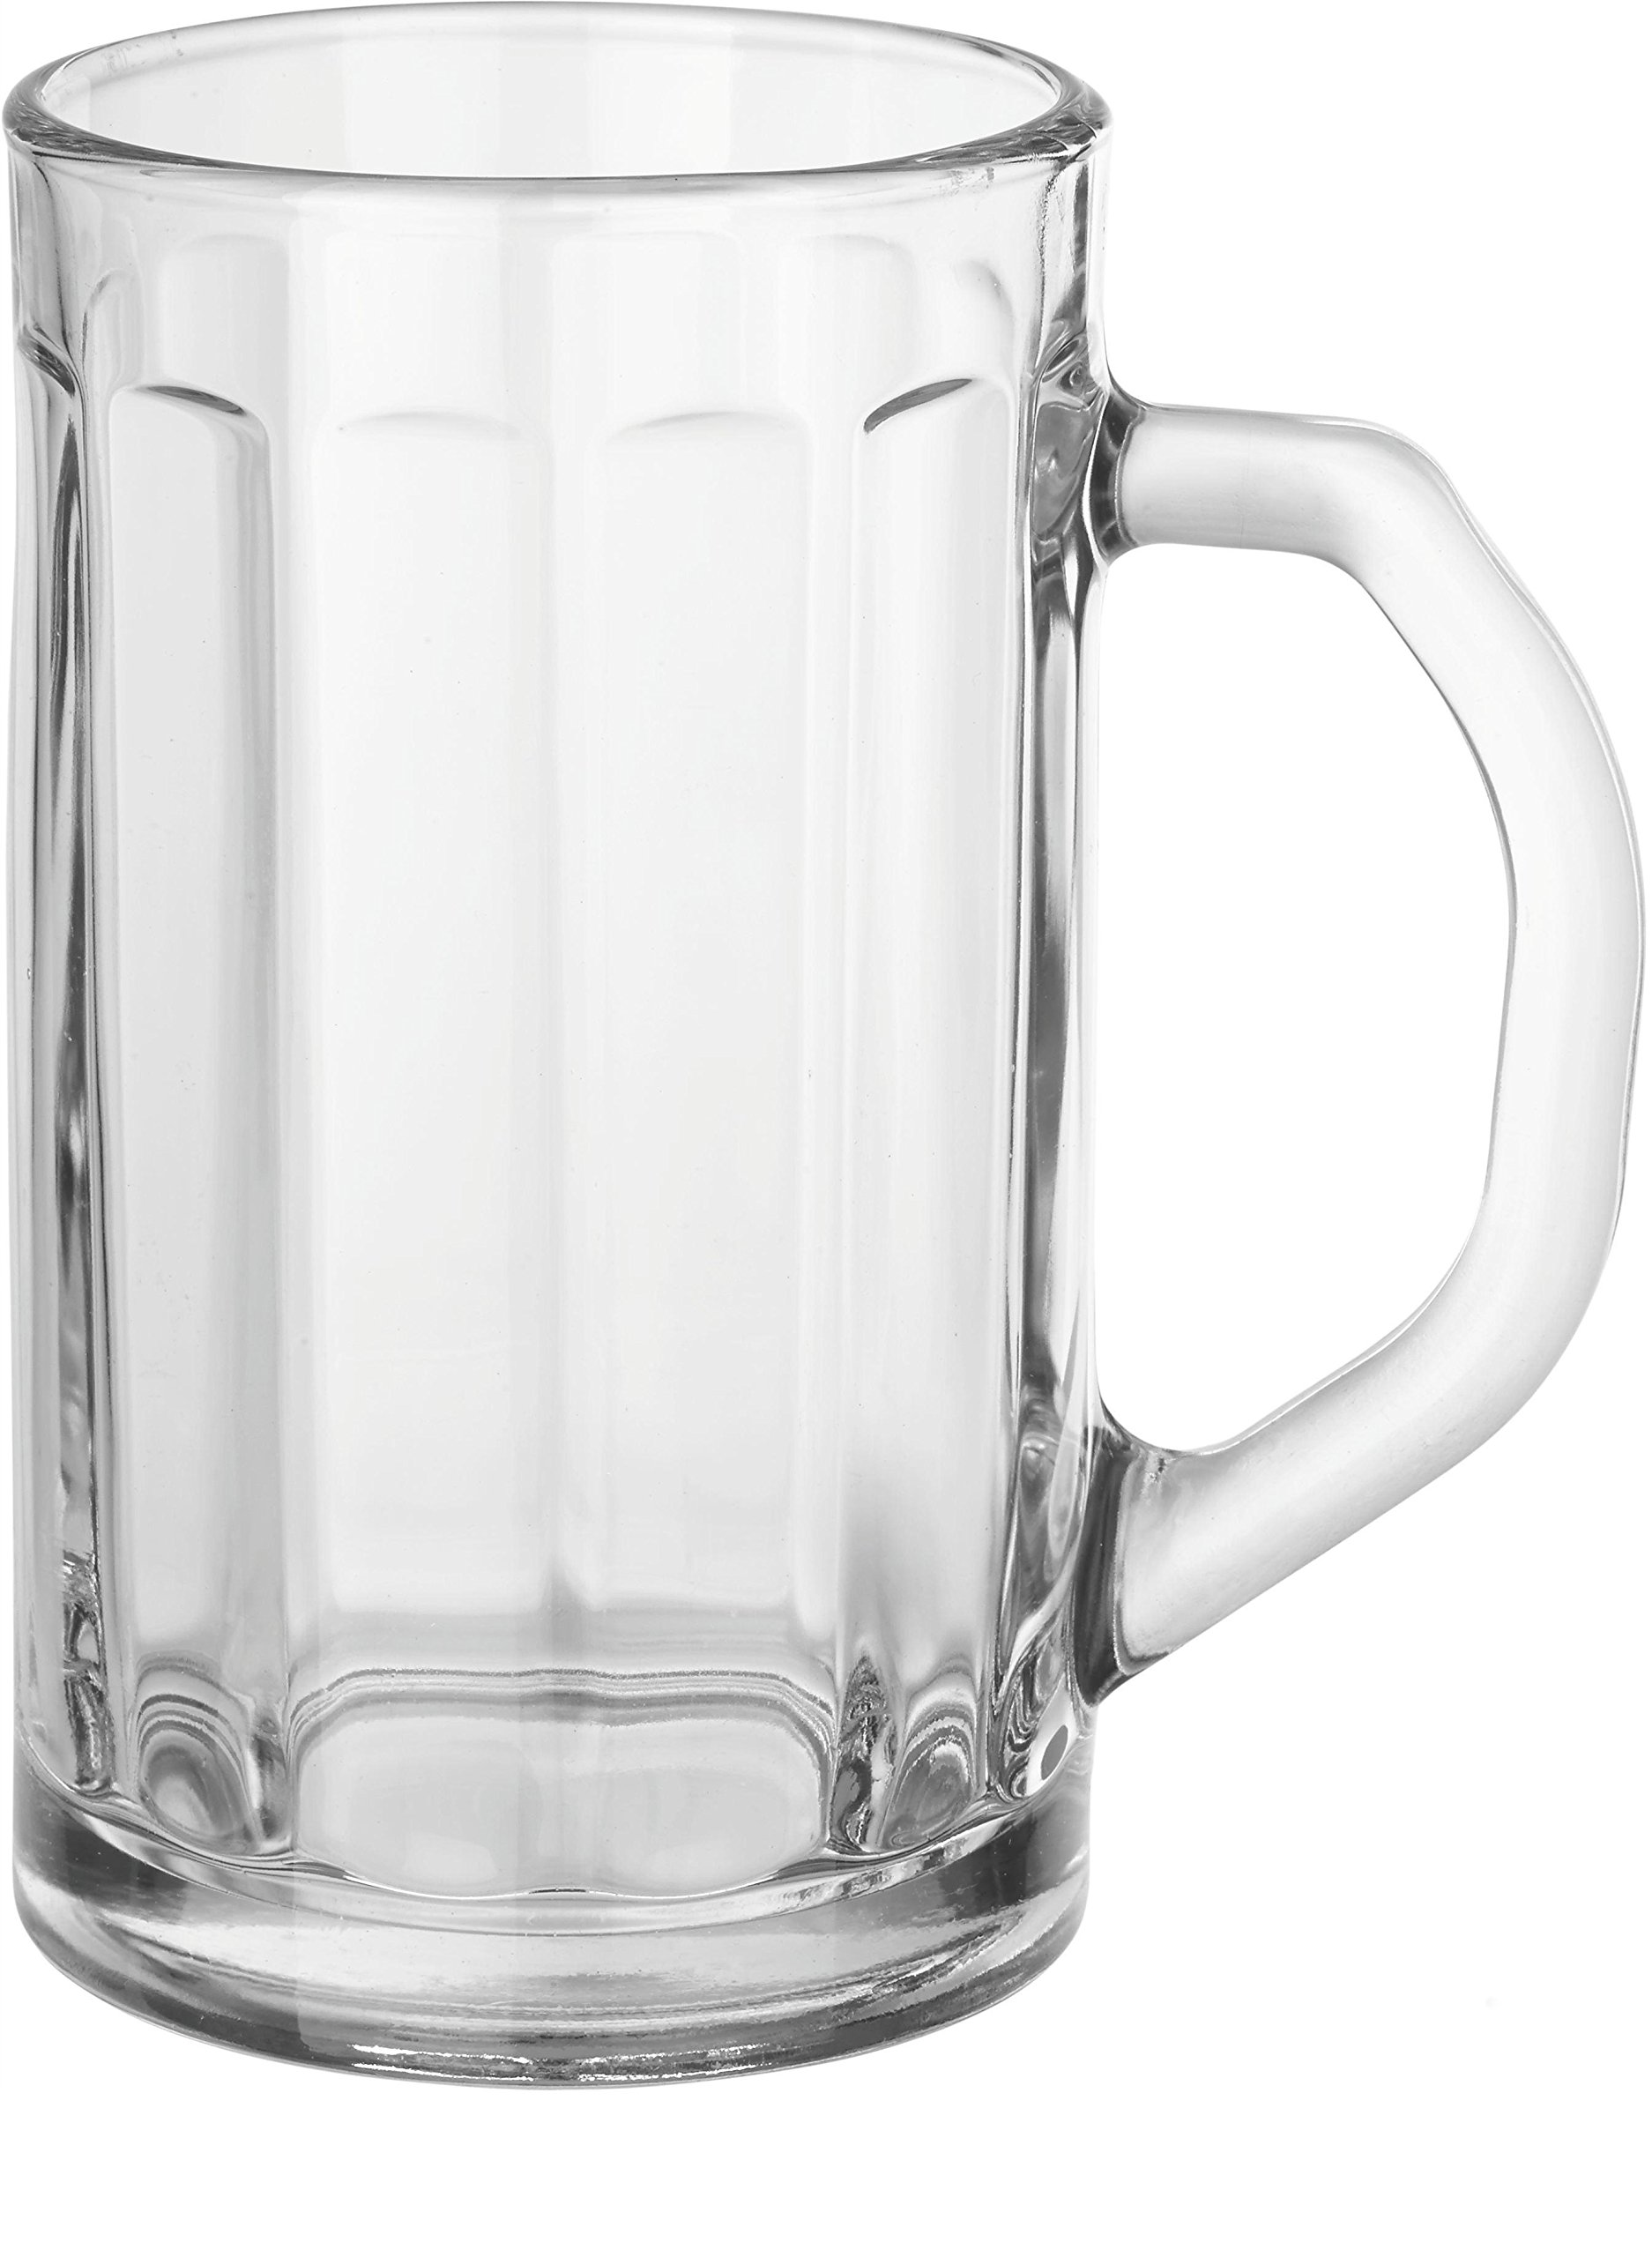 Circleware Downtown Pub Optic Glass Beer Mugs Beverage Drinking Glasses,